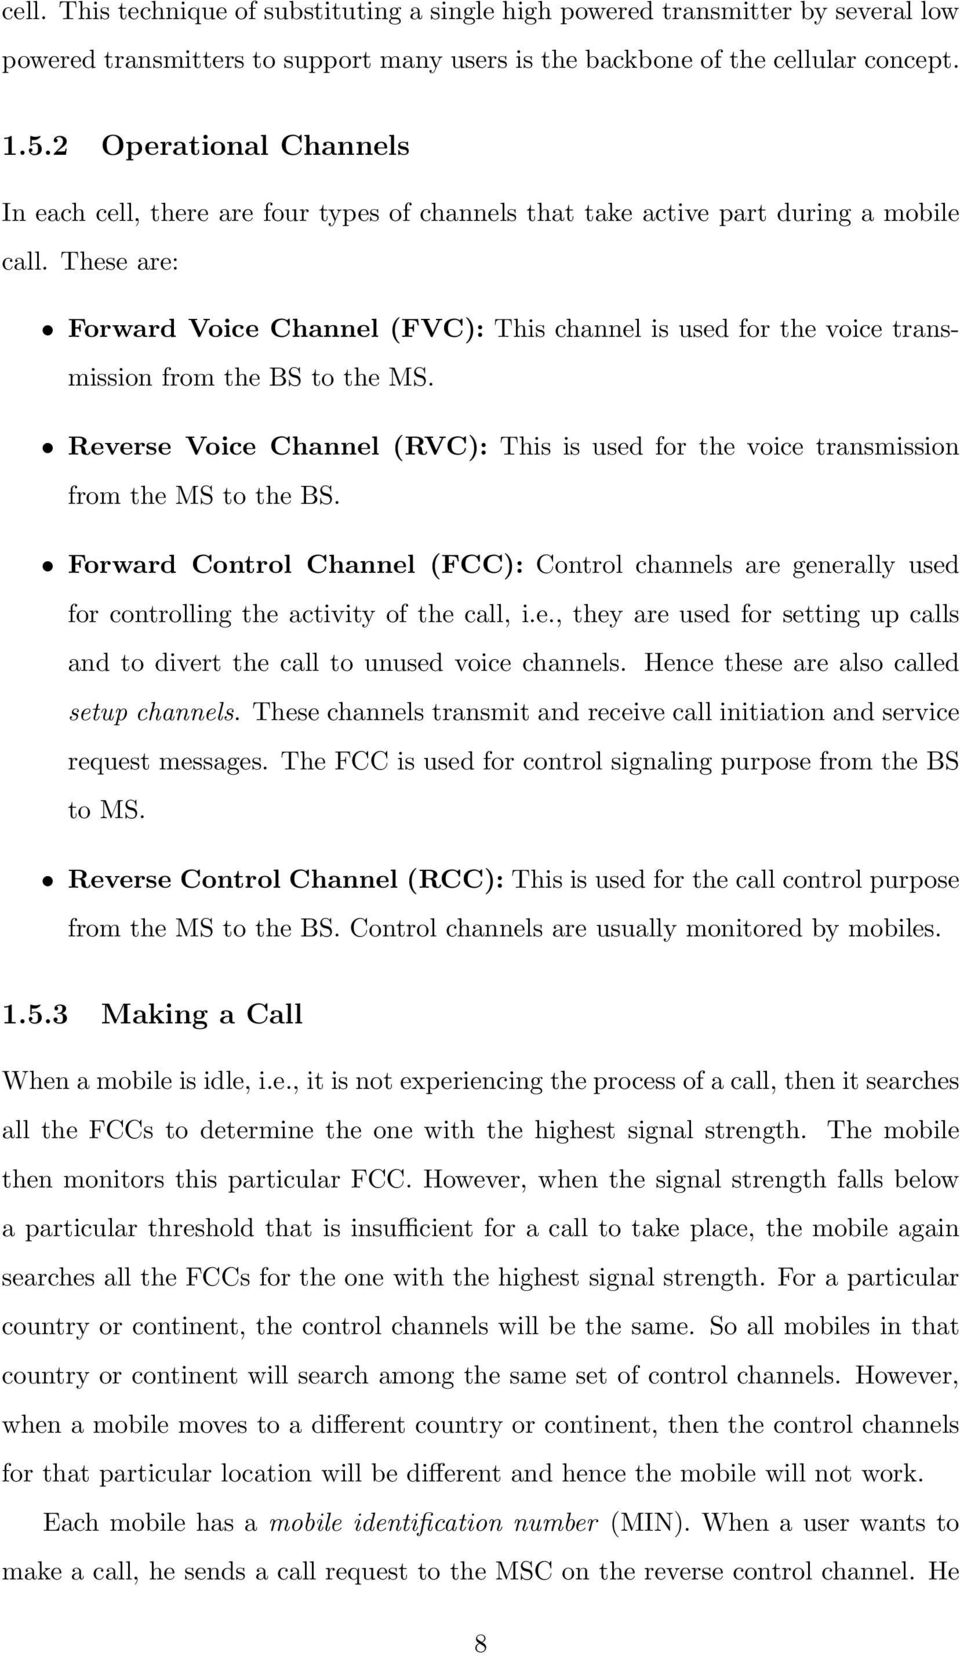 These are: Forward Voice Channel (FVC): This channel is used for the voice transmission from the BS to the MS.